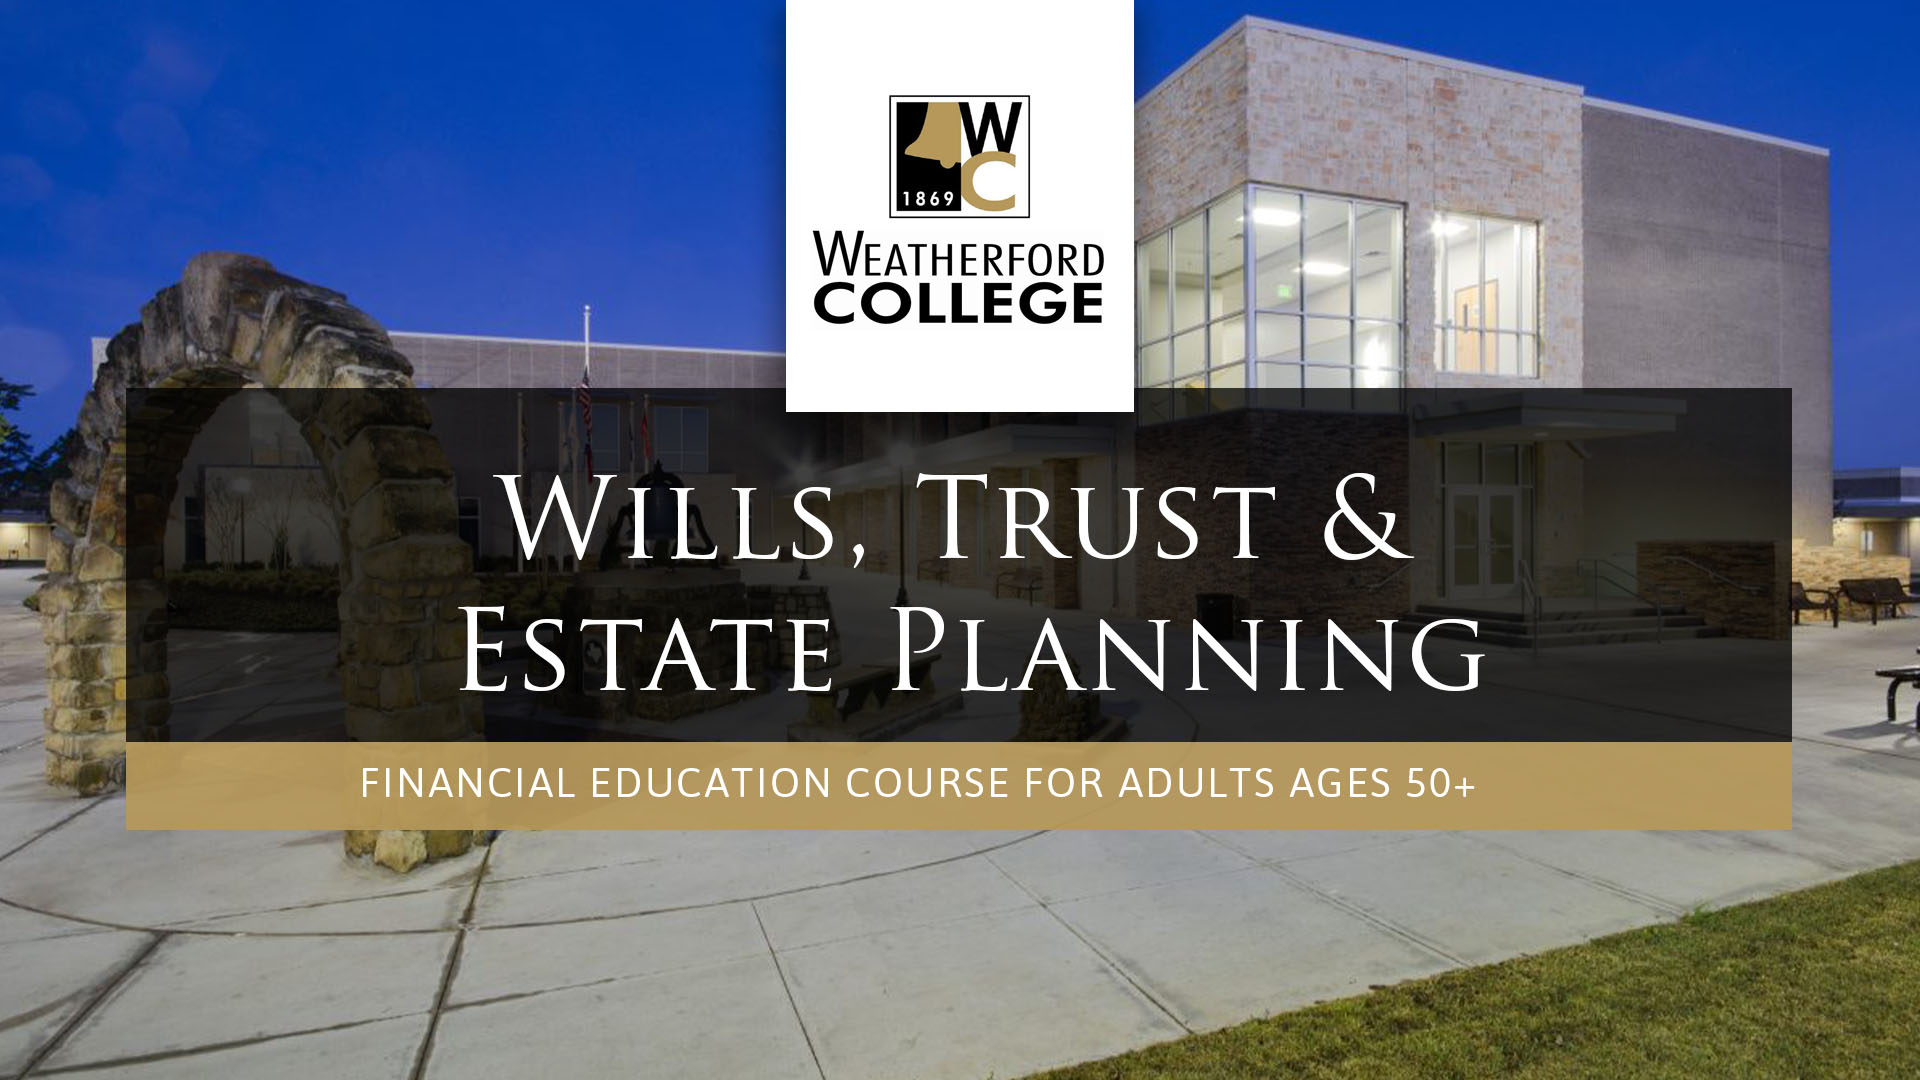 Strittmatter Wealth Management Group Financial Education Courses Weatherford College Wills, Trusts, & Estate Planning Weatherford, Texas